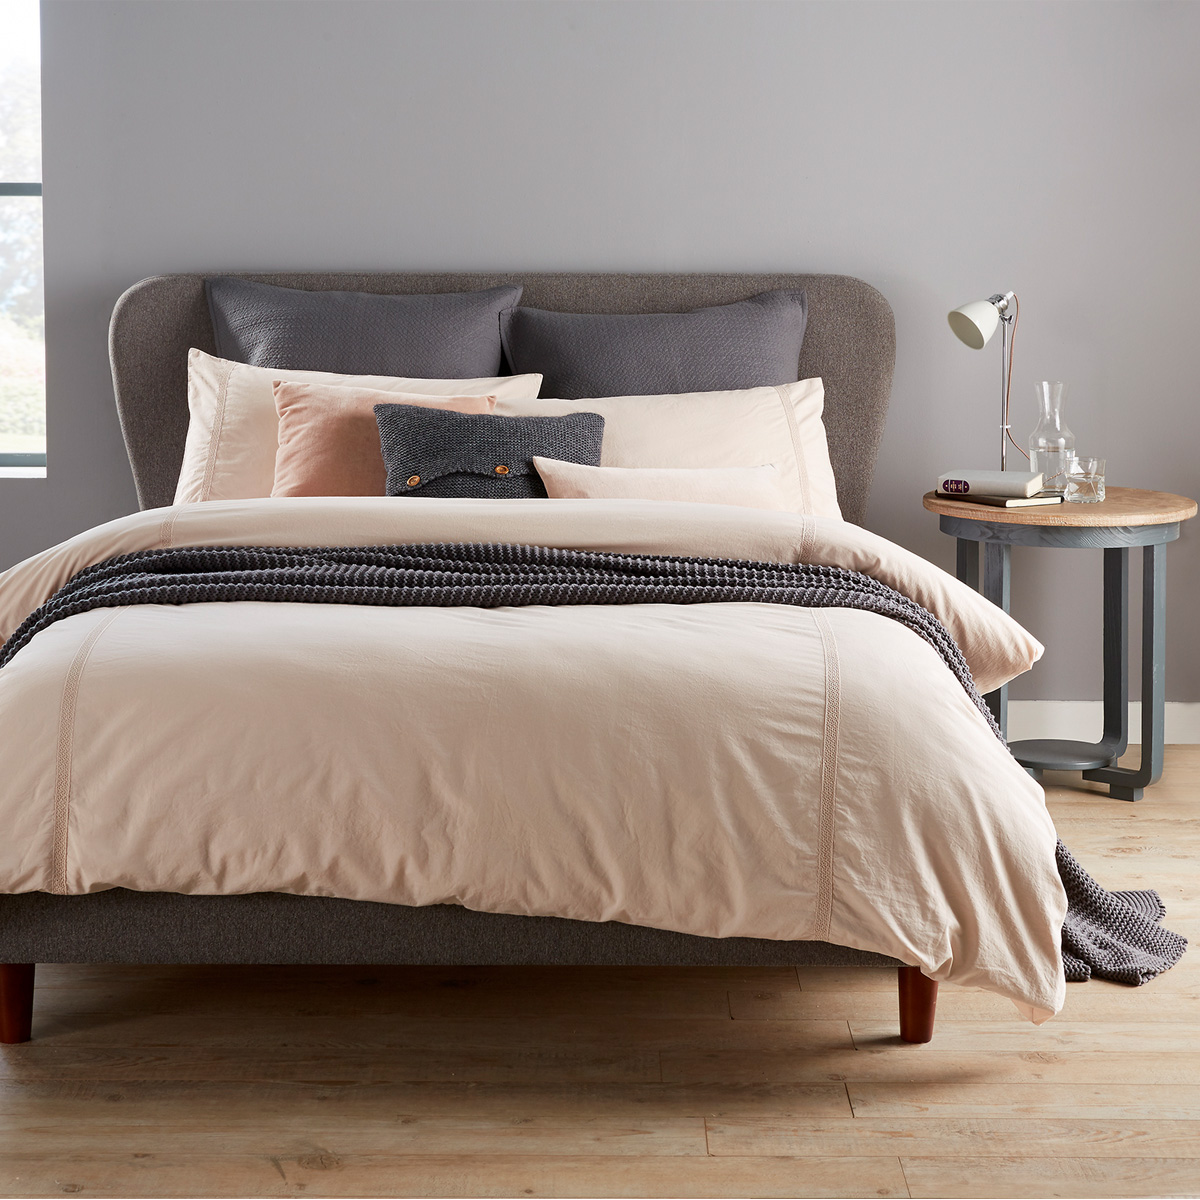 Christy Peonia Bed Linen Set Pink Christy